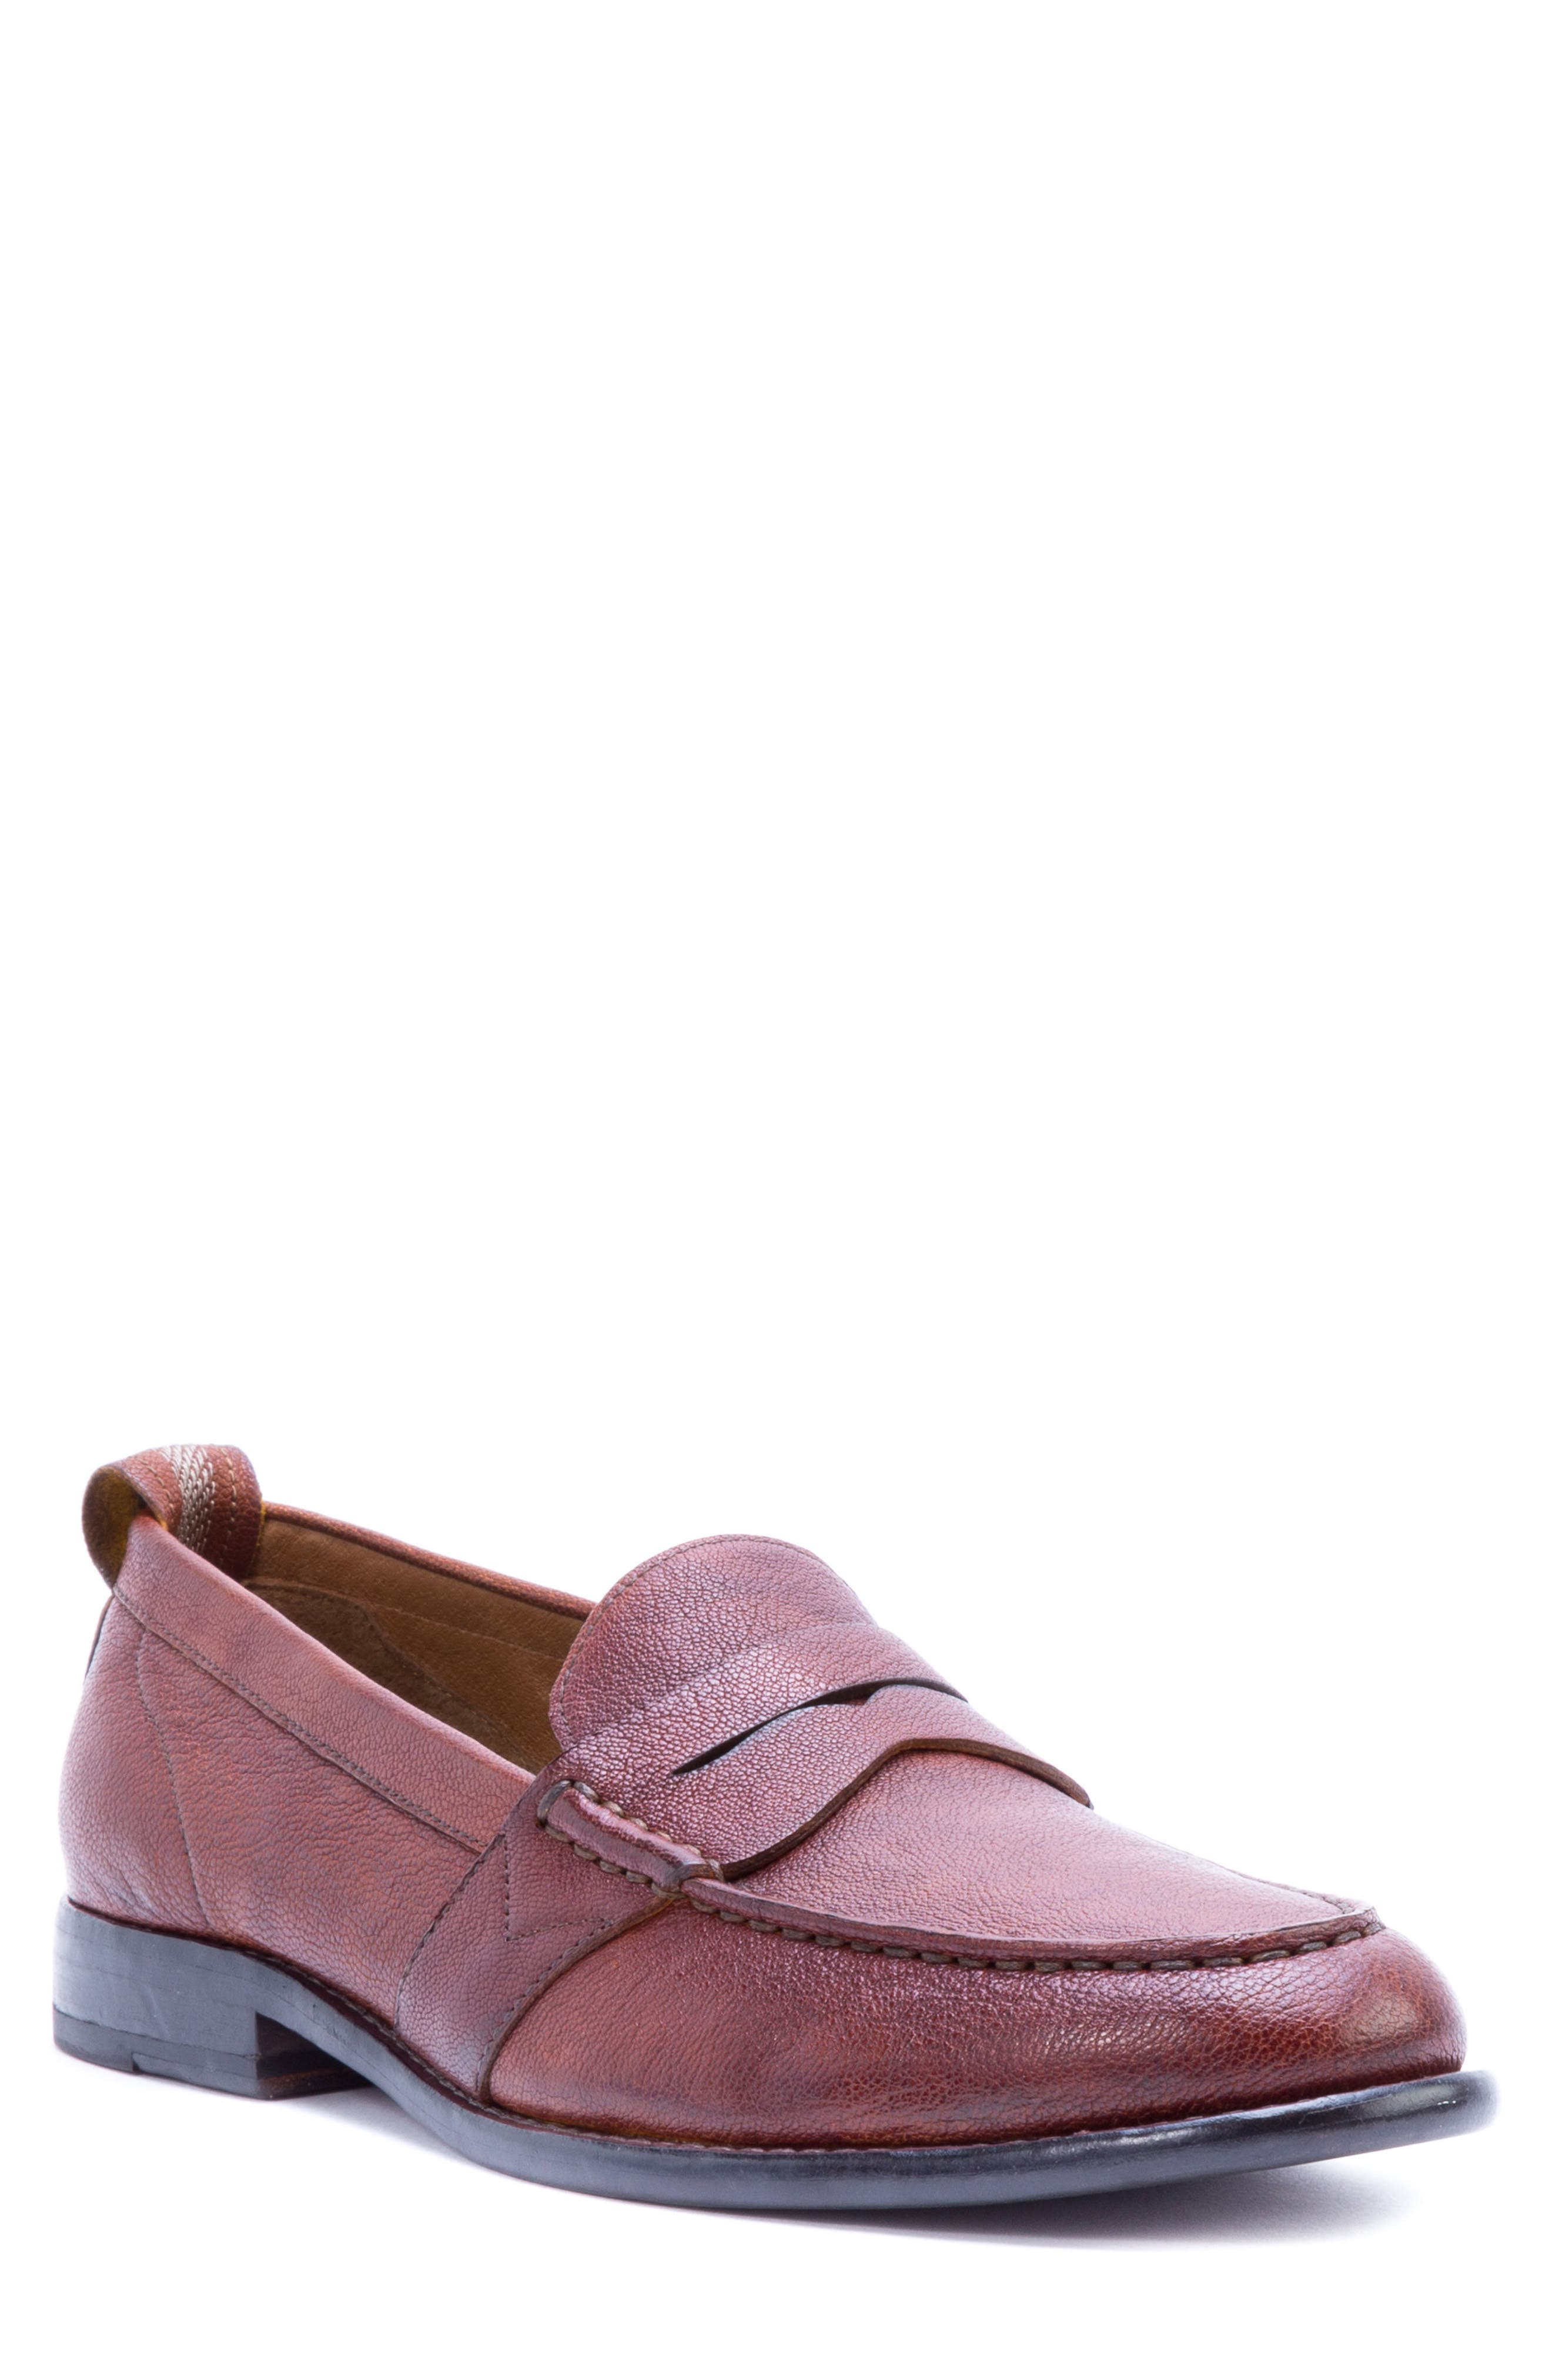 Torres Penny Loafer,                         Main,                         color, Cognac Leather